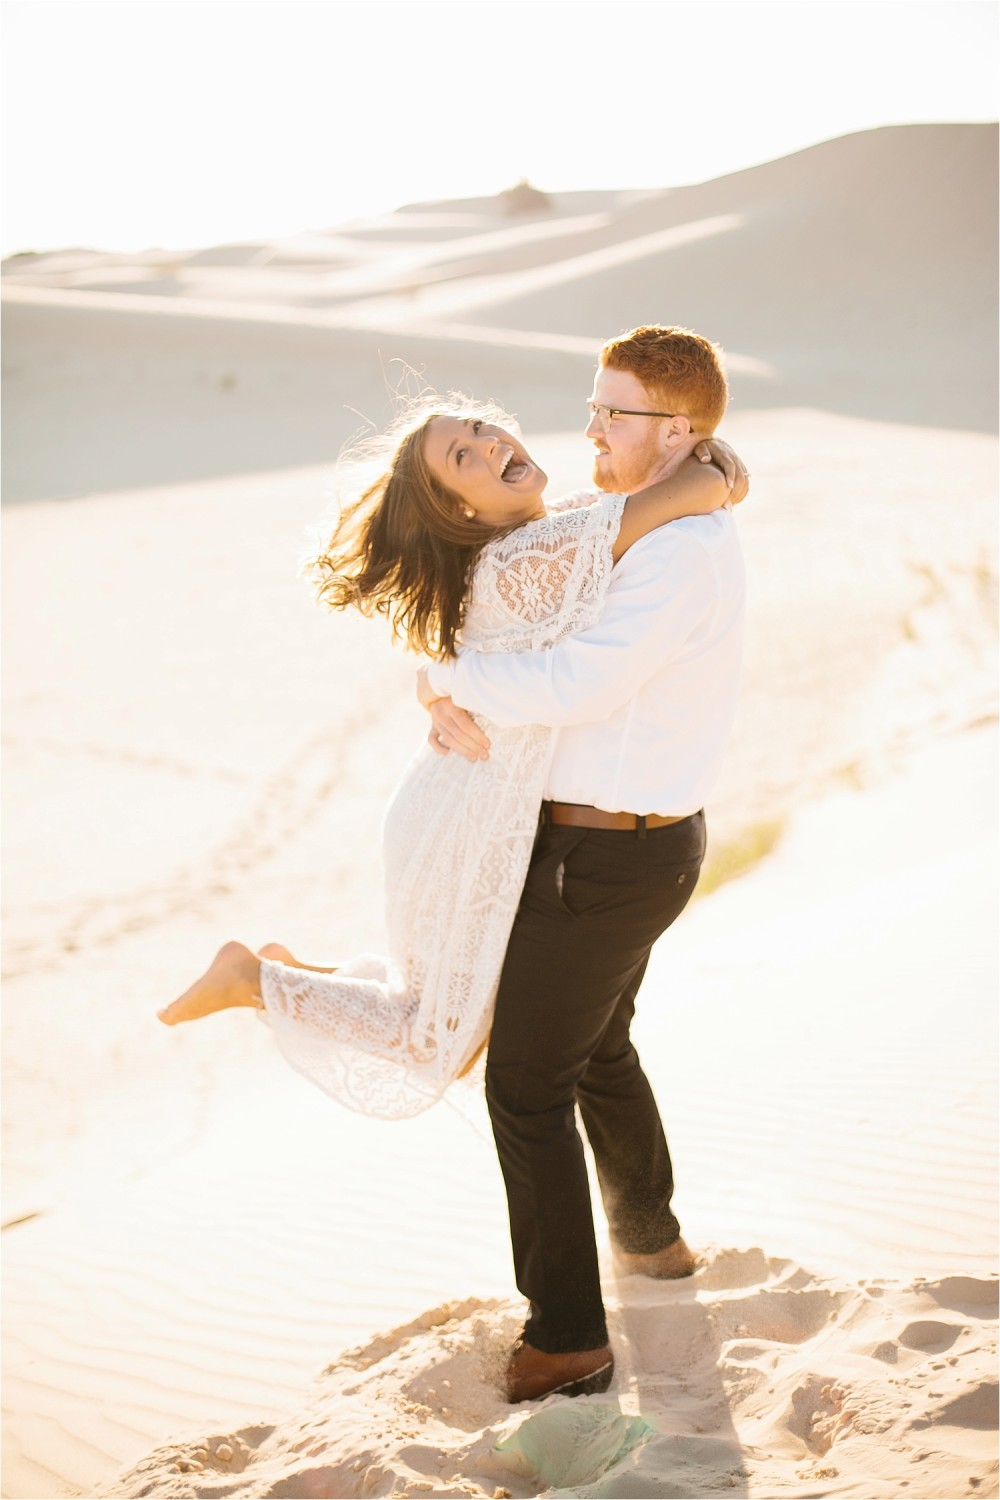 Lauren + Jacob __ a monahans sand dunes engagement session at sunrise by North Texas Wedding Photographer, Rachel Meagan Photography __ 35